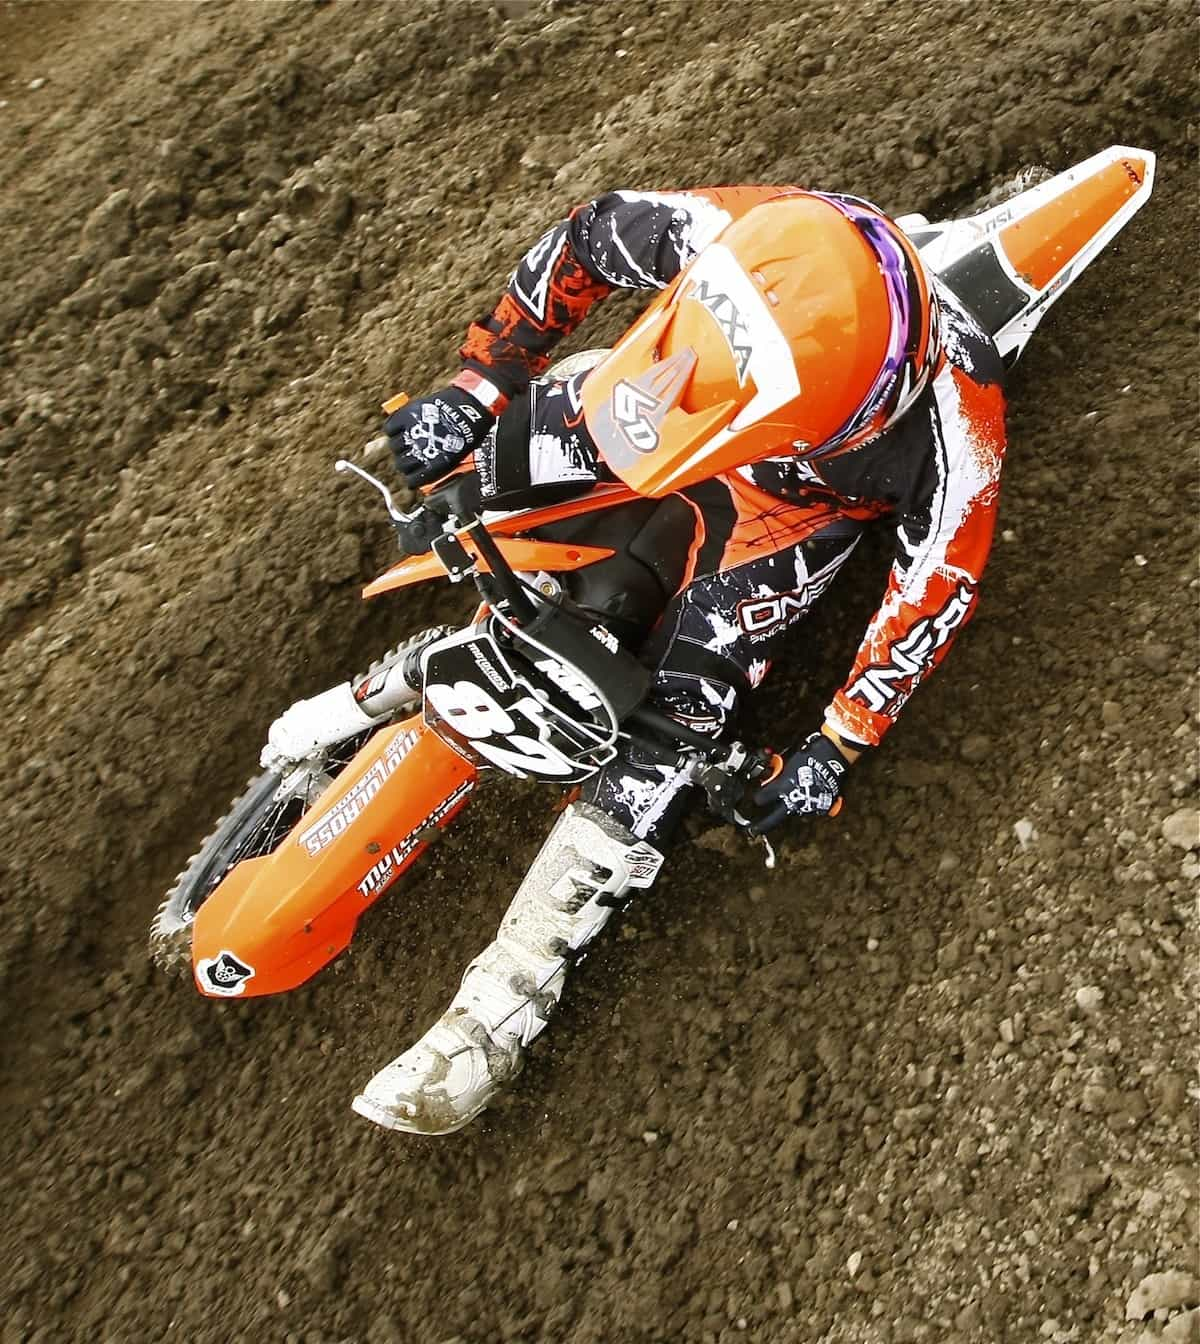 2016 Mxa Race Test Everything You Need To Know About The Ktm 150sx